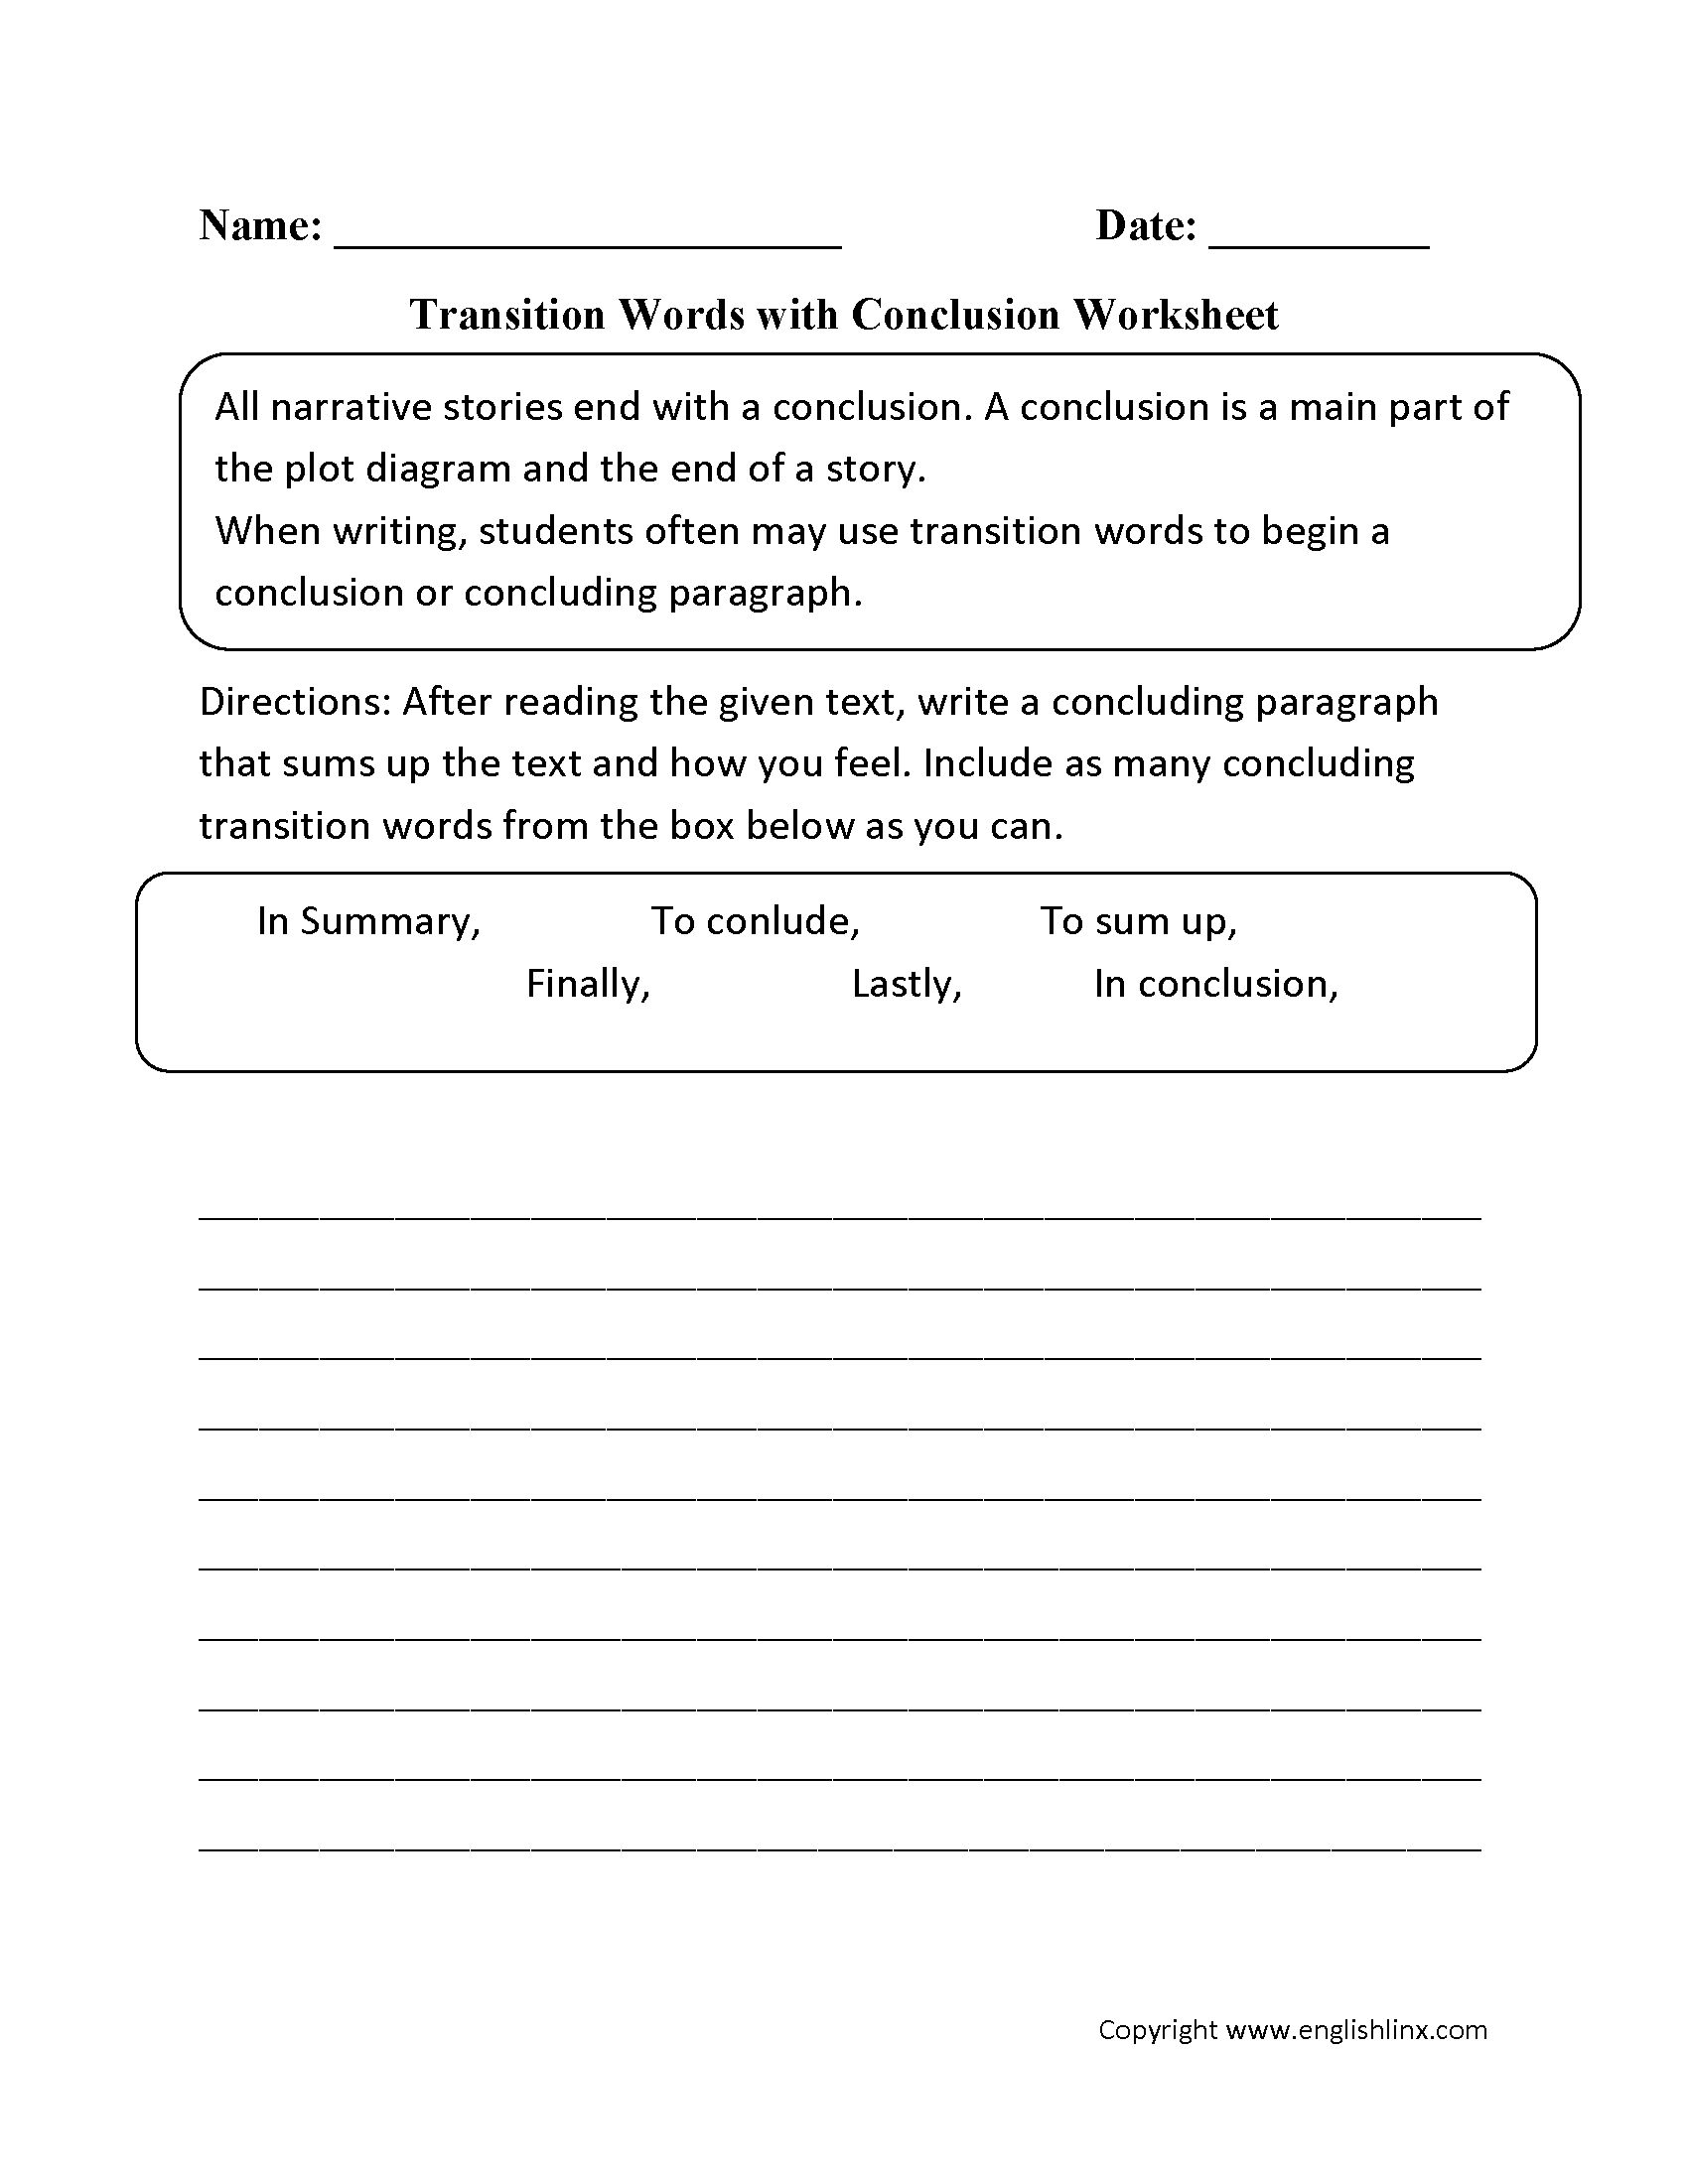 Draw Conclusions Worksheet 5Th Grade Worksheets for all | Download ...